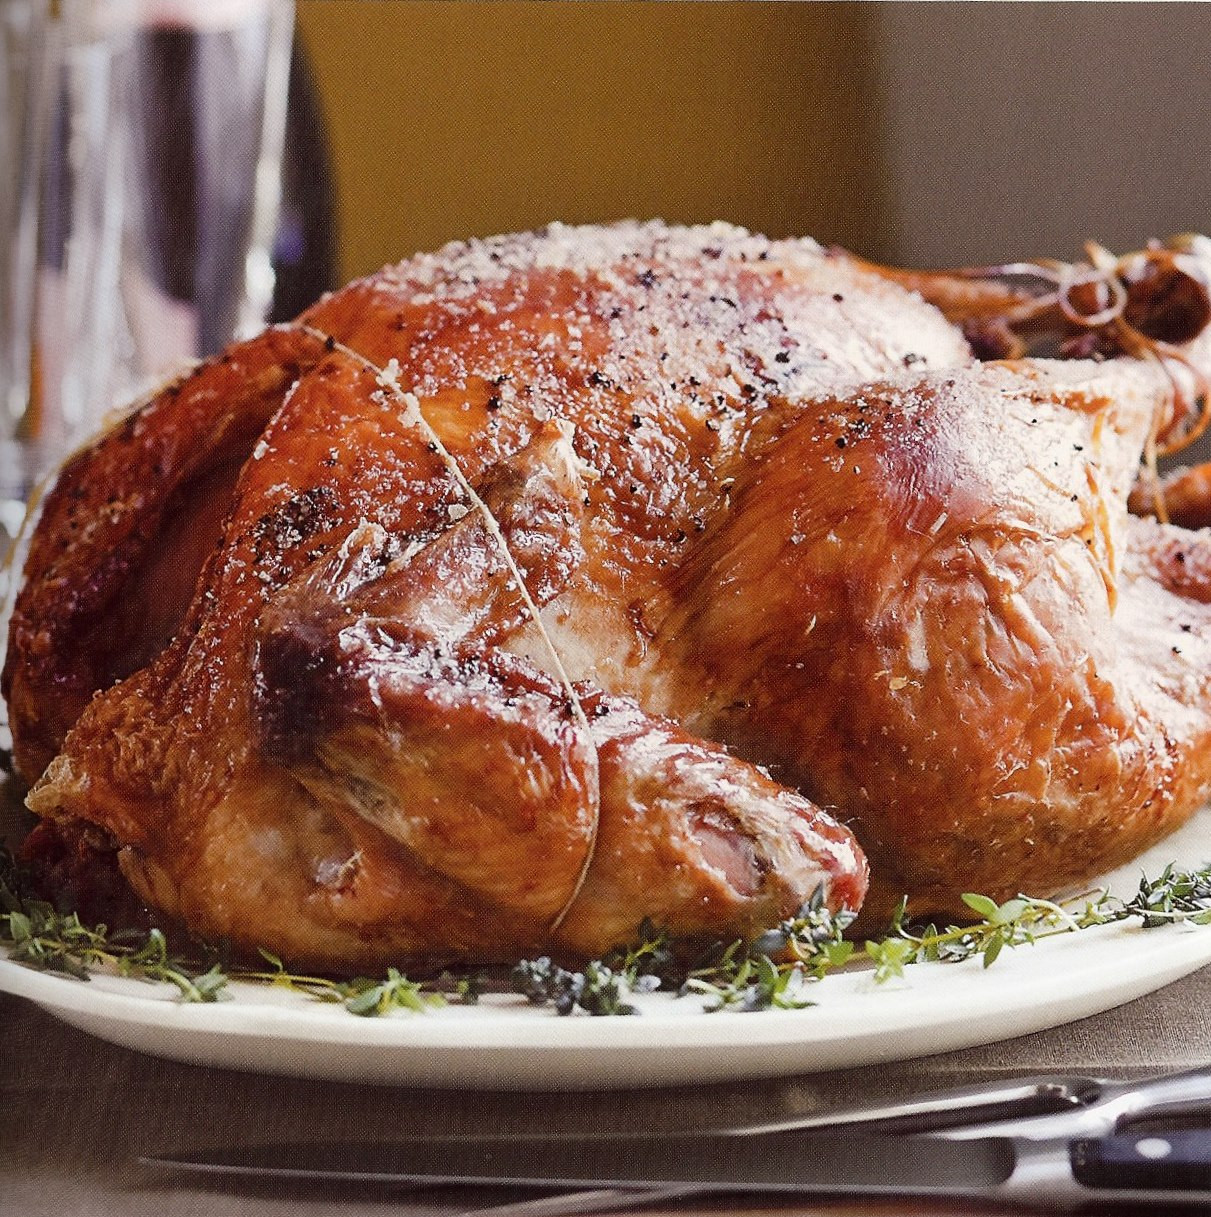 Barefoot Contessa Thanksgiving Turkey  Circa Ina Garten s new cookbook just in time for